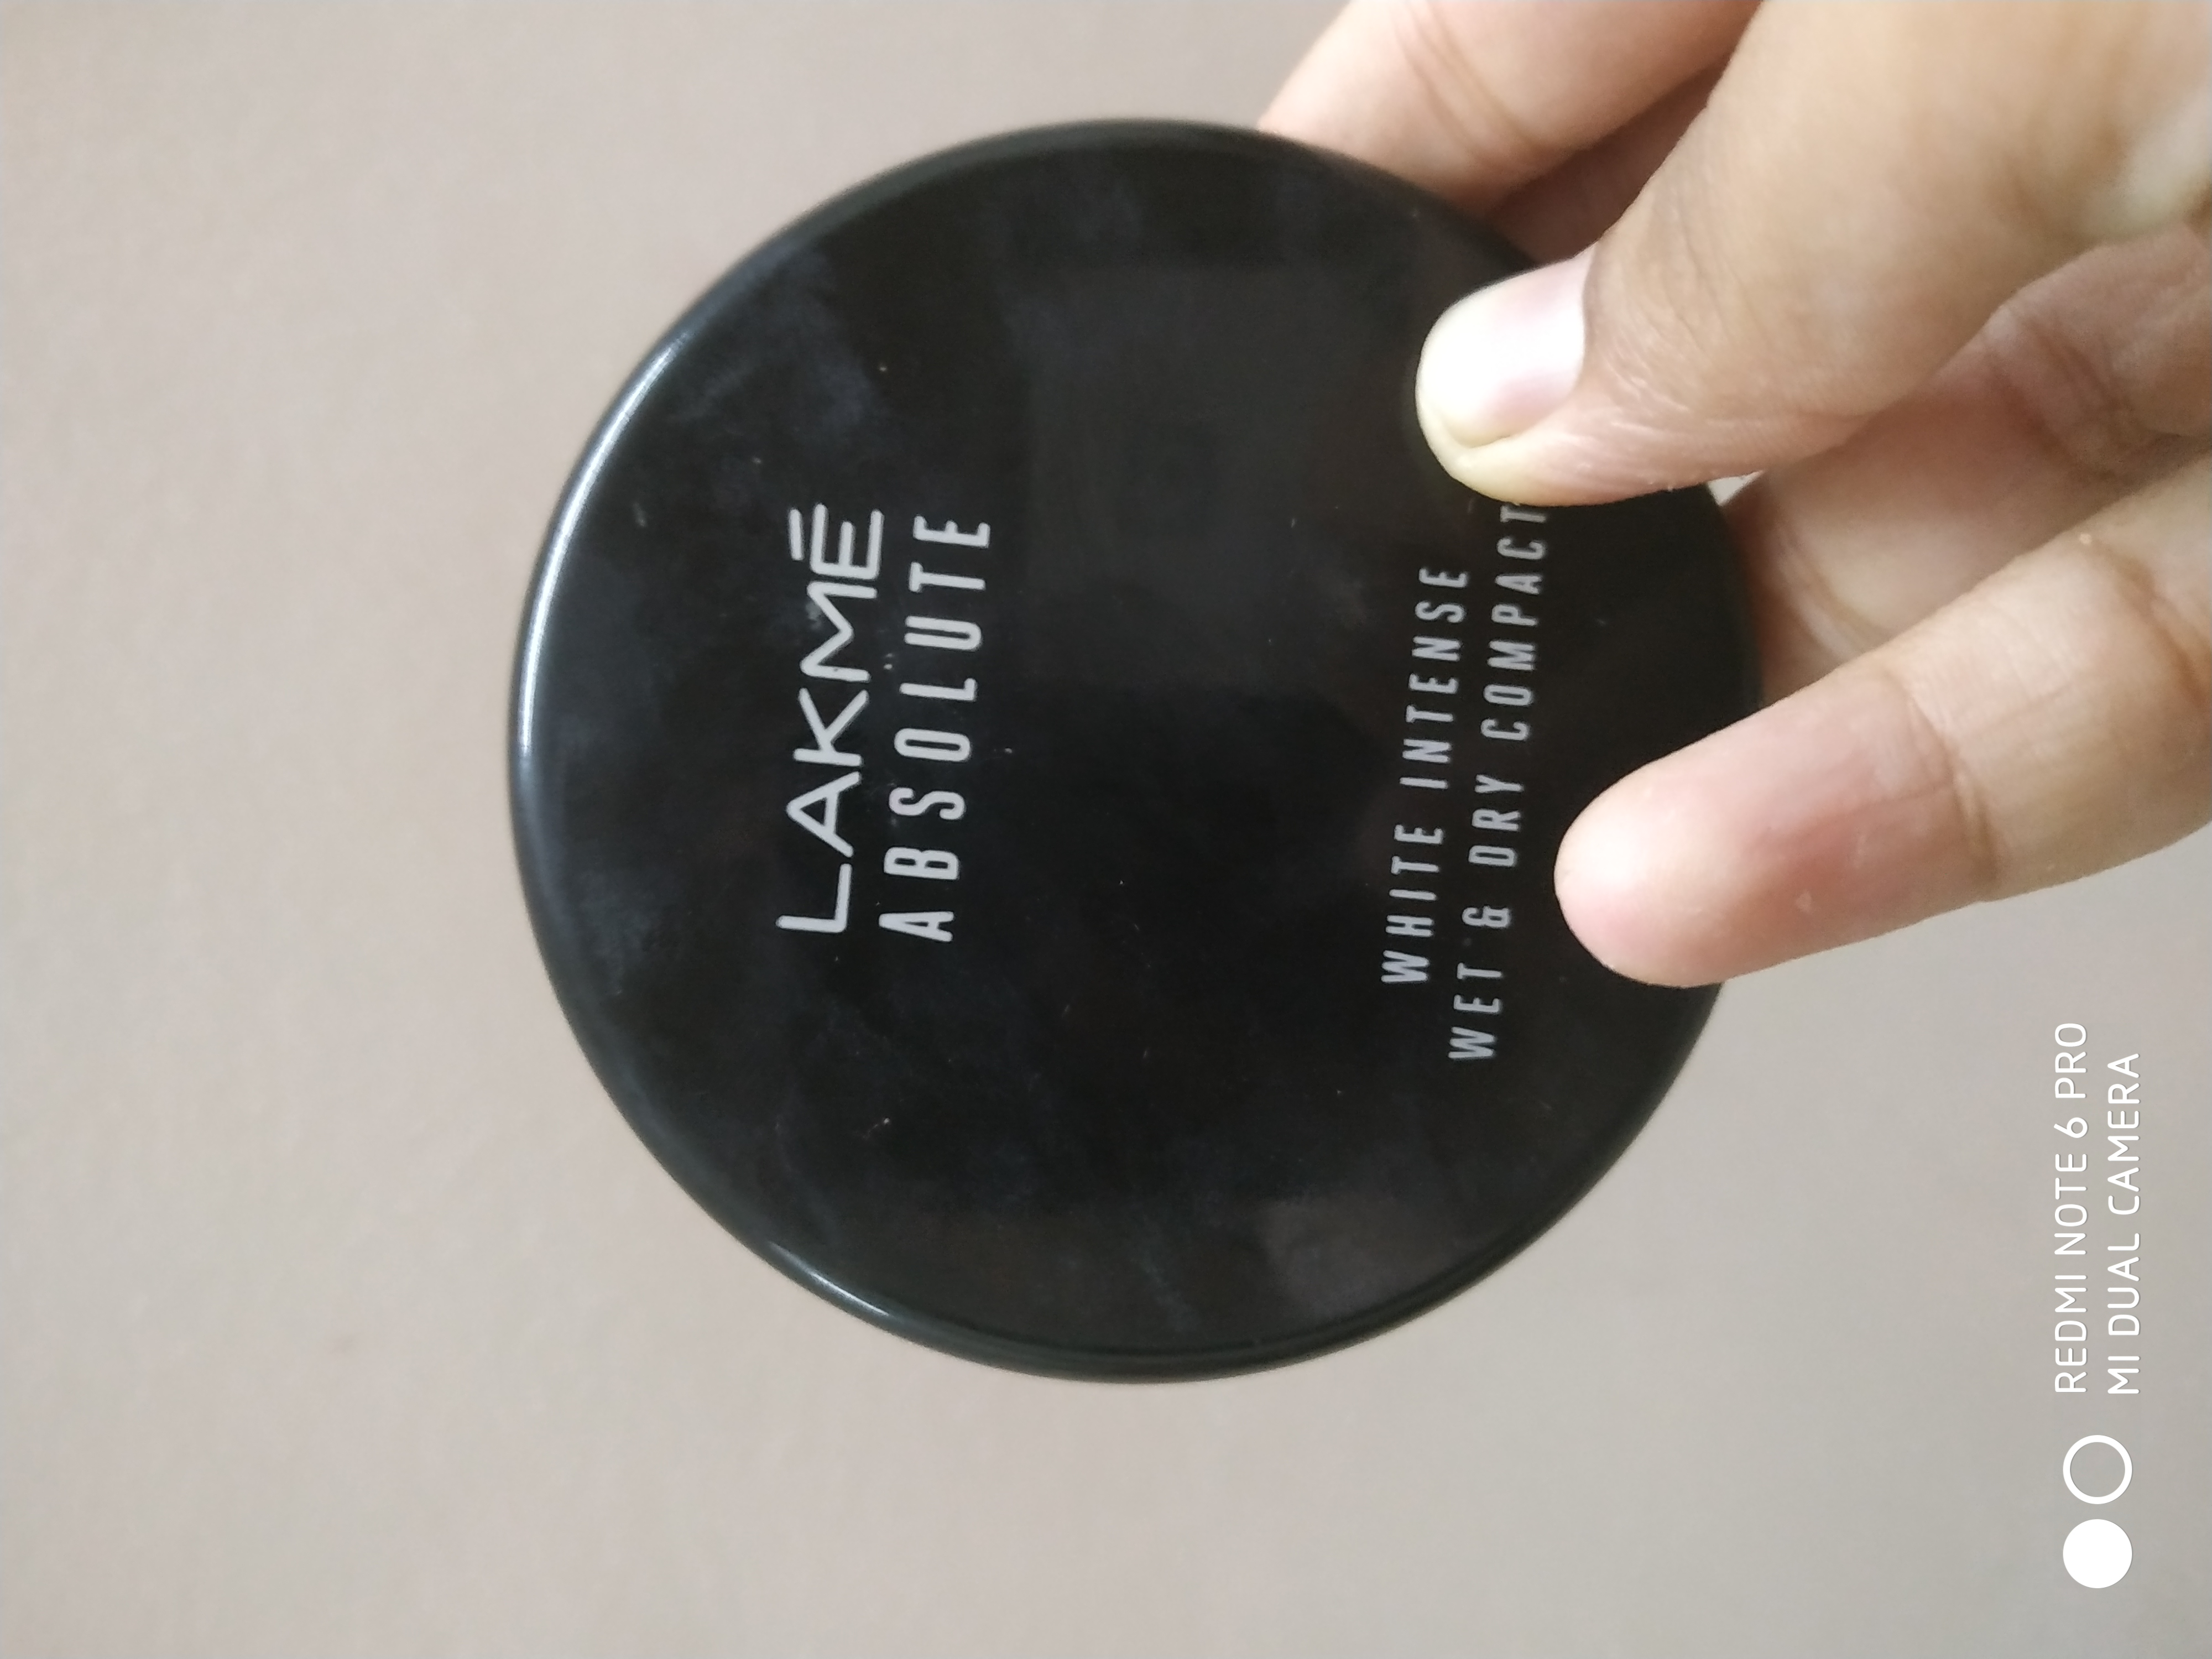 Lakme Absolute White Intense Wet & Dry Compact-Compact is wet and dry both but how?-By nkulsoom001